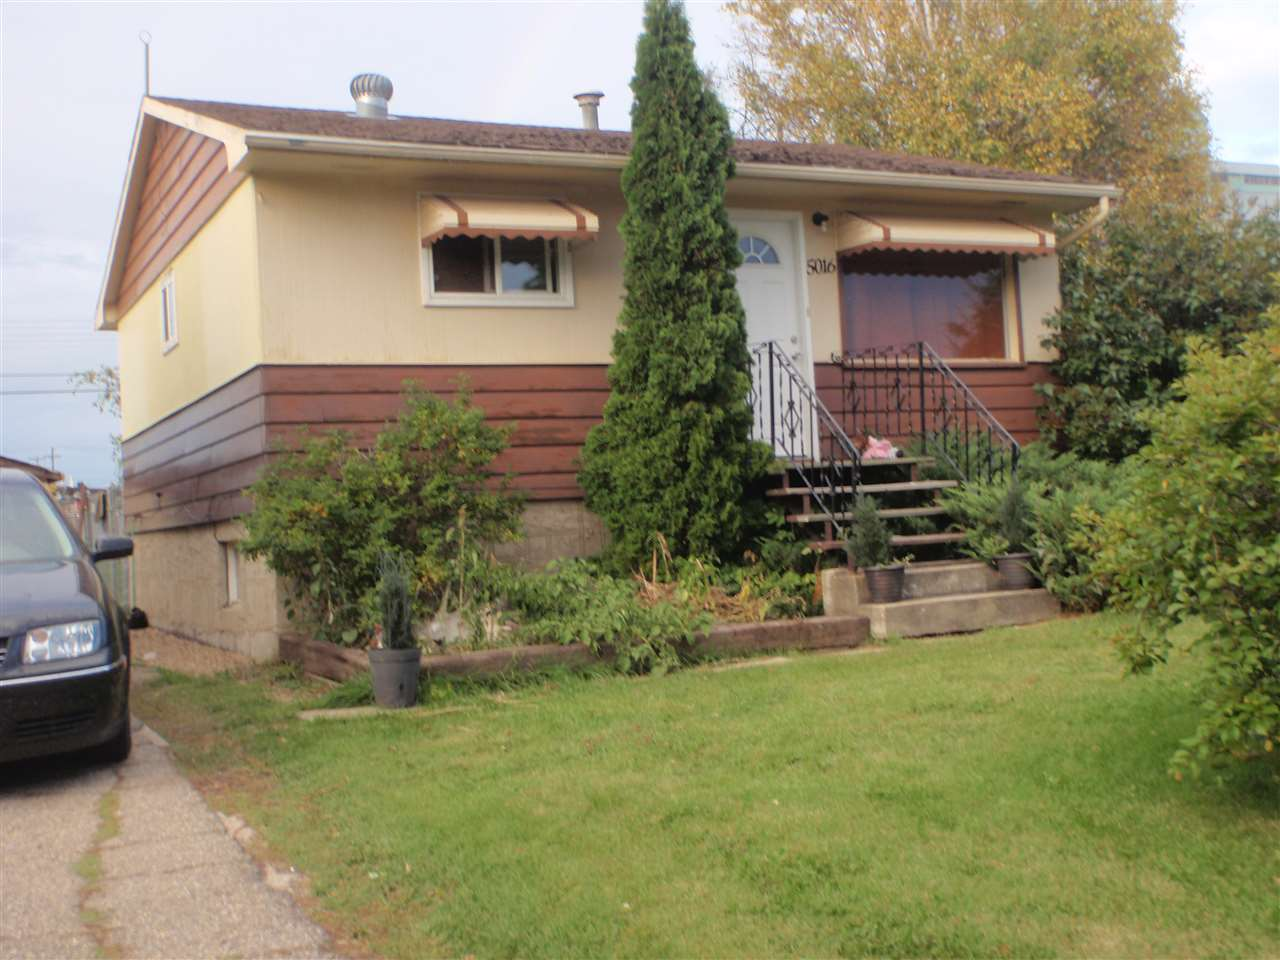 This starter home is ready and waiting for you. Two bedroom 704 sq. ft. bungalow with large yard, a smaller 12' x 22' detached garage and a garden spot. Upgrades include most windows, interior doors / closet doors, laminate flooring on main, renovated main bath, furnace & hot water tank in 2011, chain link fencing & a fire pit. Basement also has some recent renovations with open style rumpus room (a wall could easily be installed to make a 3rd bedroom).